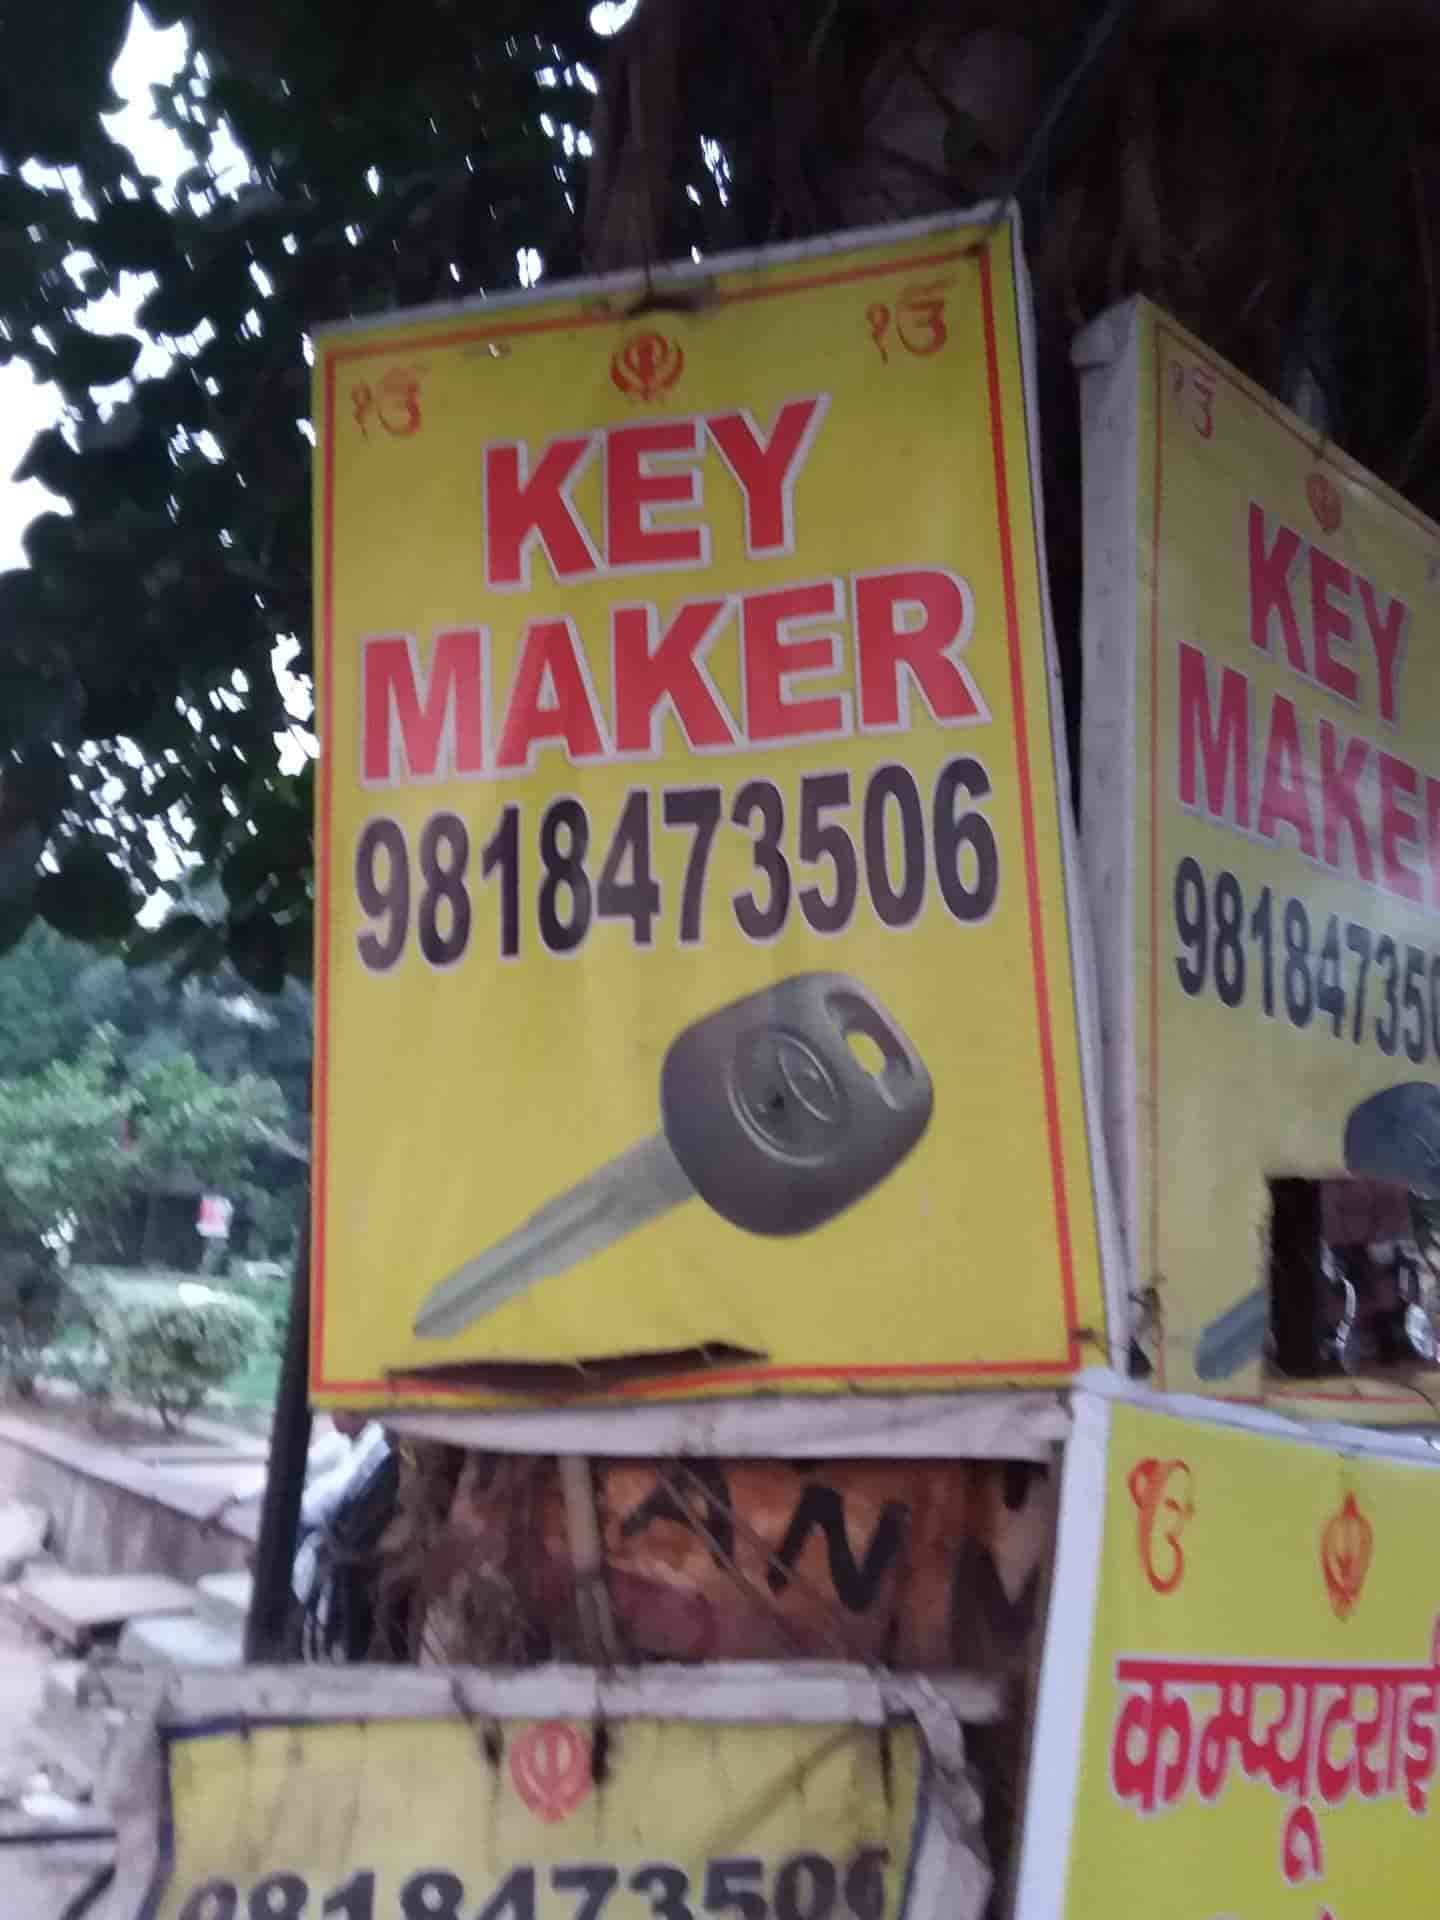 Singh Key Maker, Lajpat Nagar - Duplicate Key Makers in Delhi - Justdial